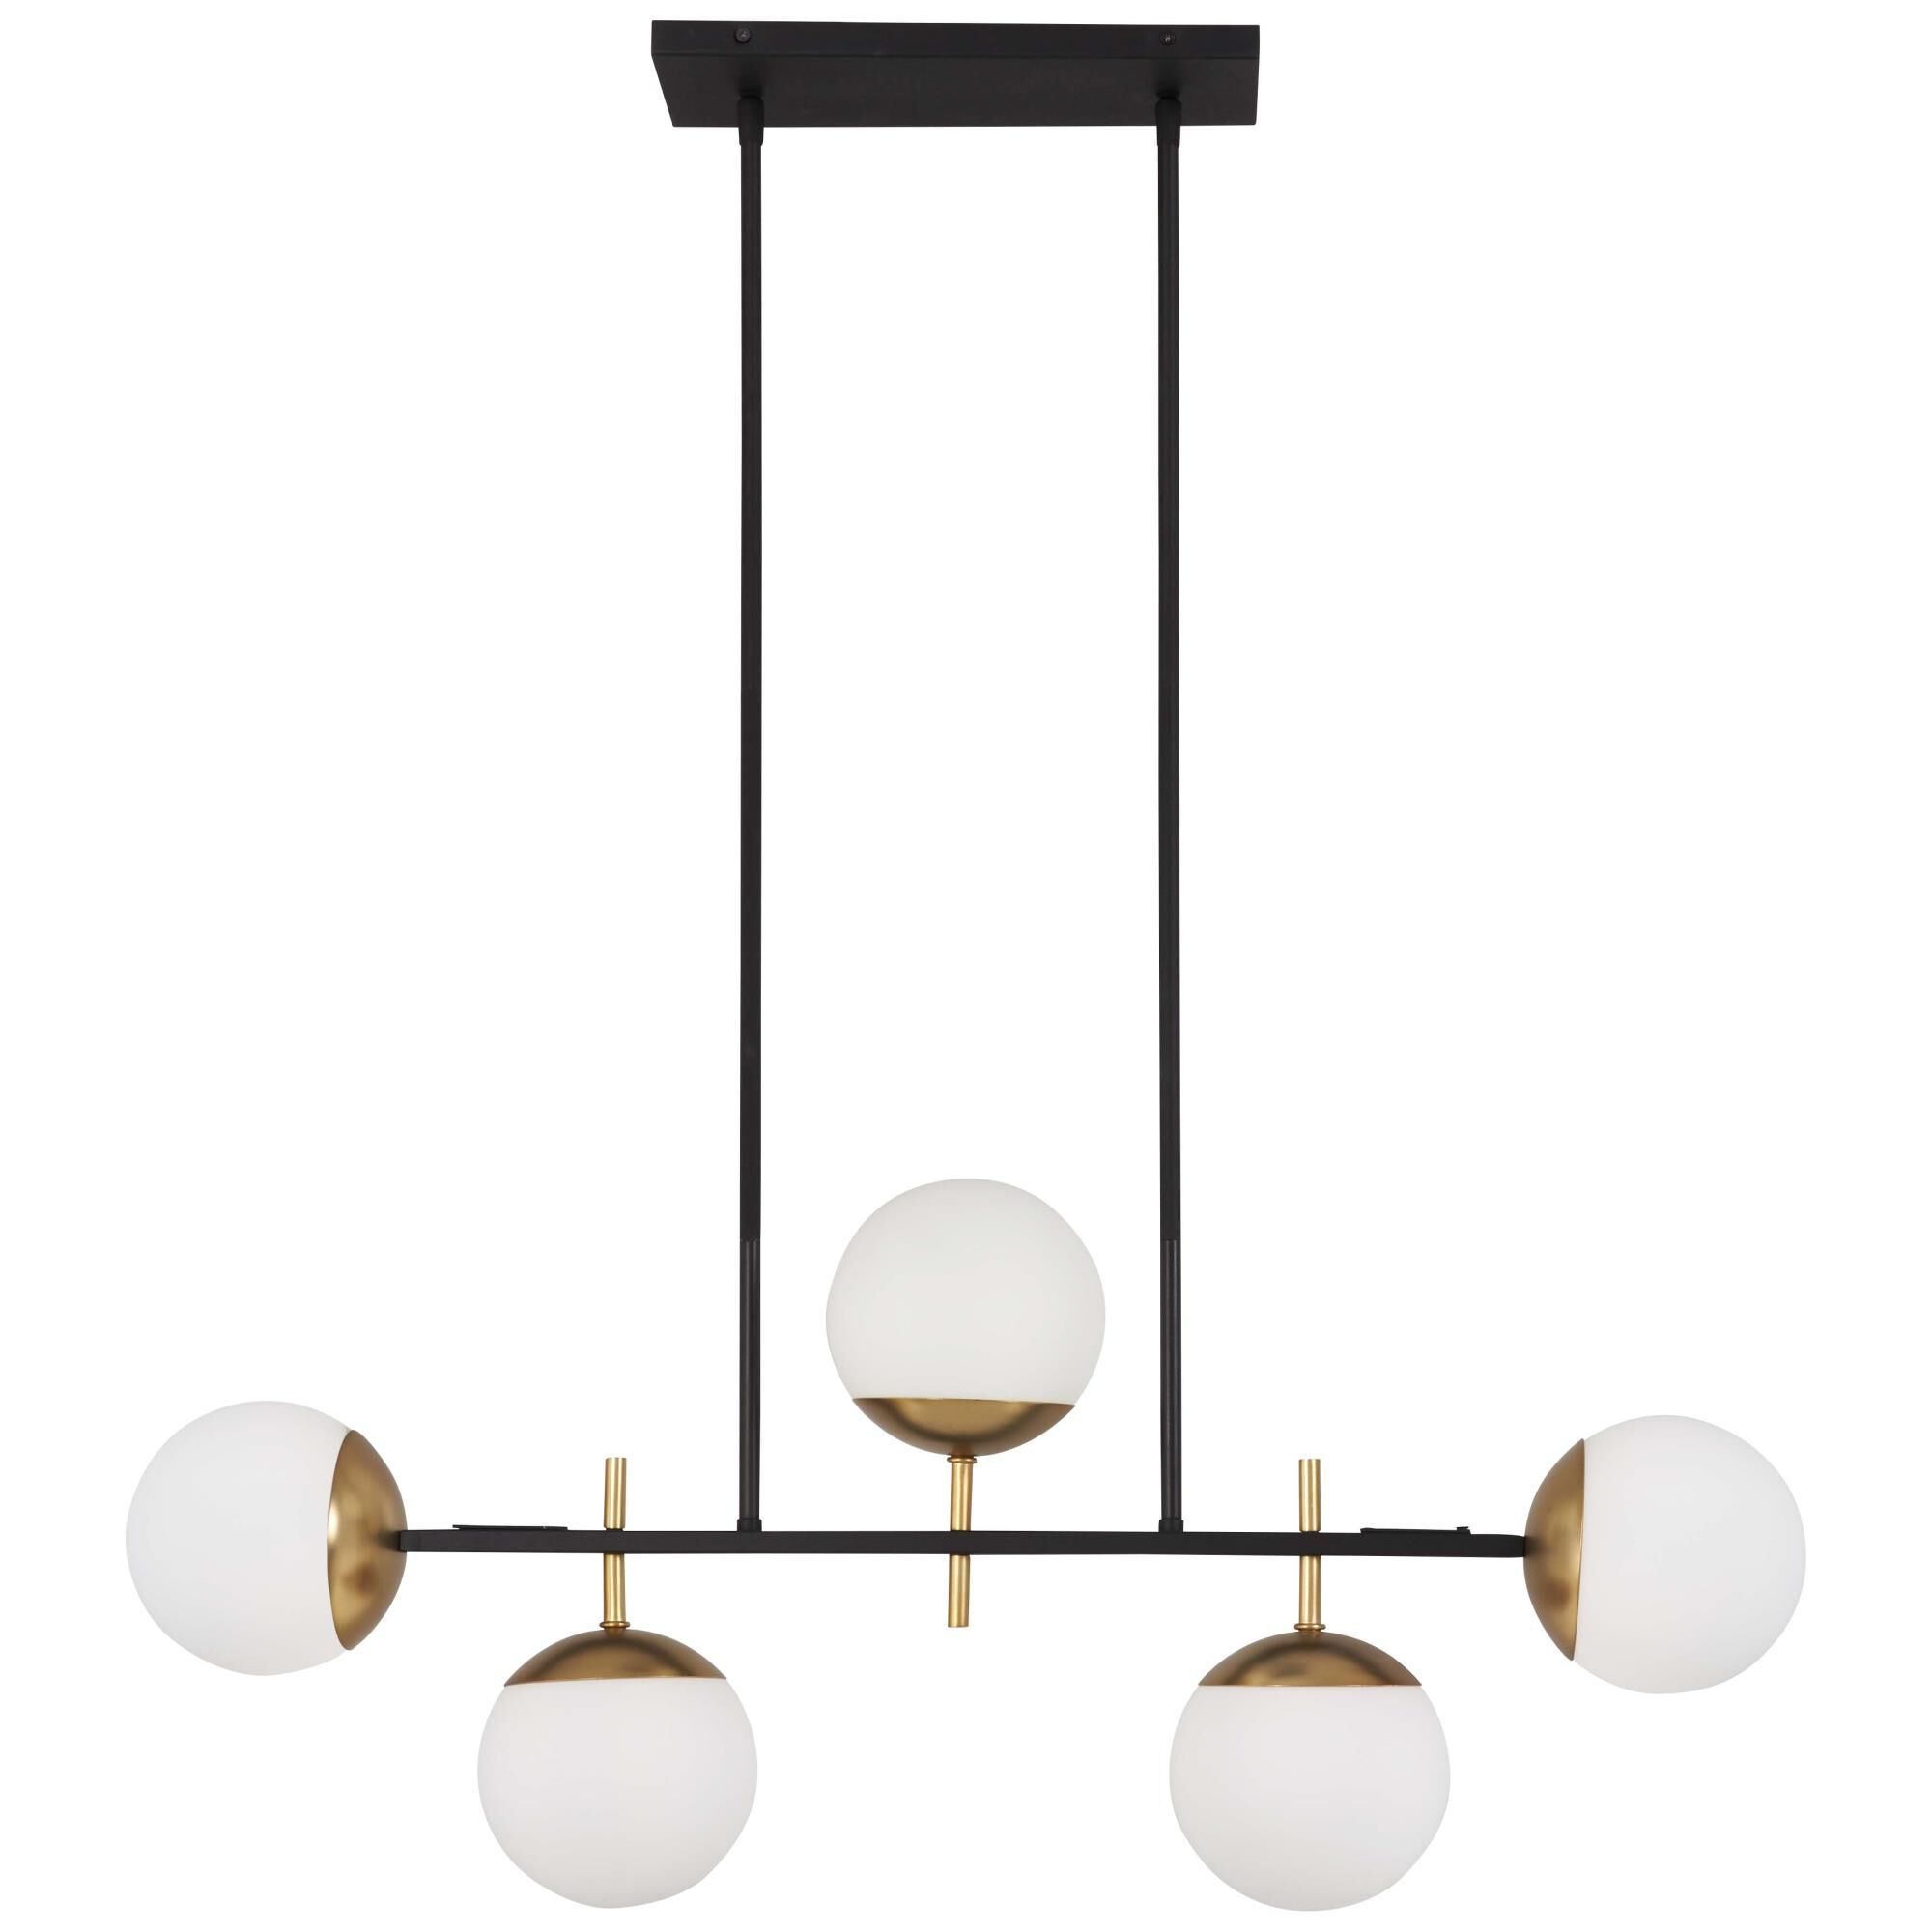 Kovacs Alluria 6 Inch 5 Light Linear Suspension Light Alluria - P1355-618 - Transitional